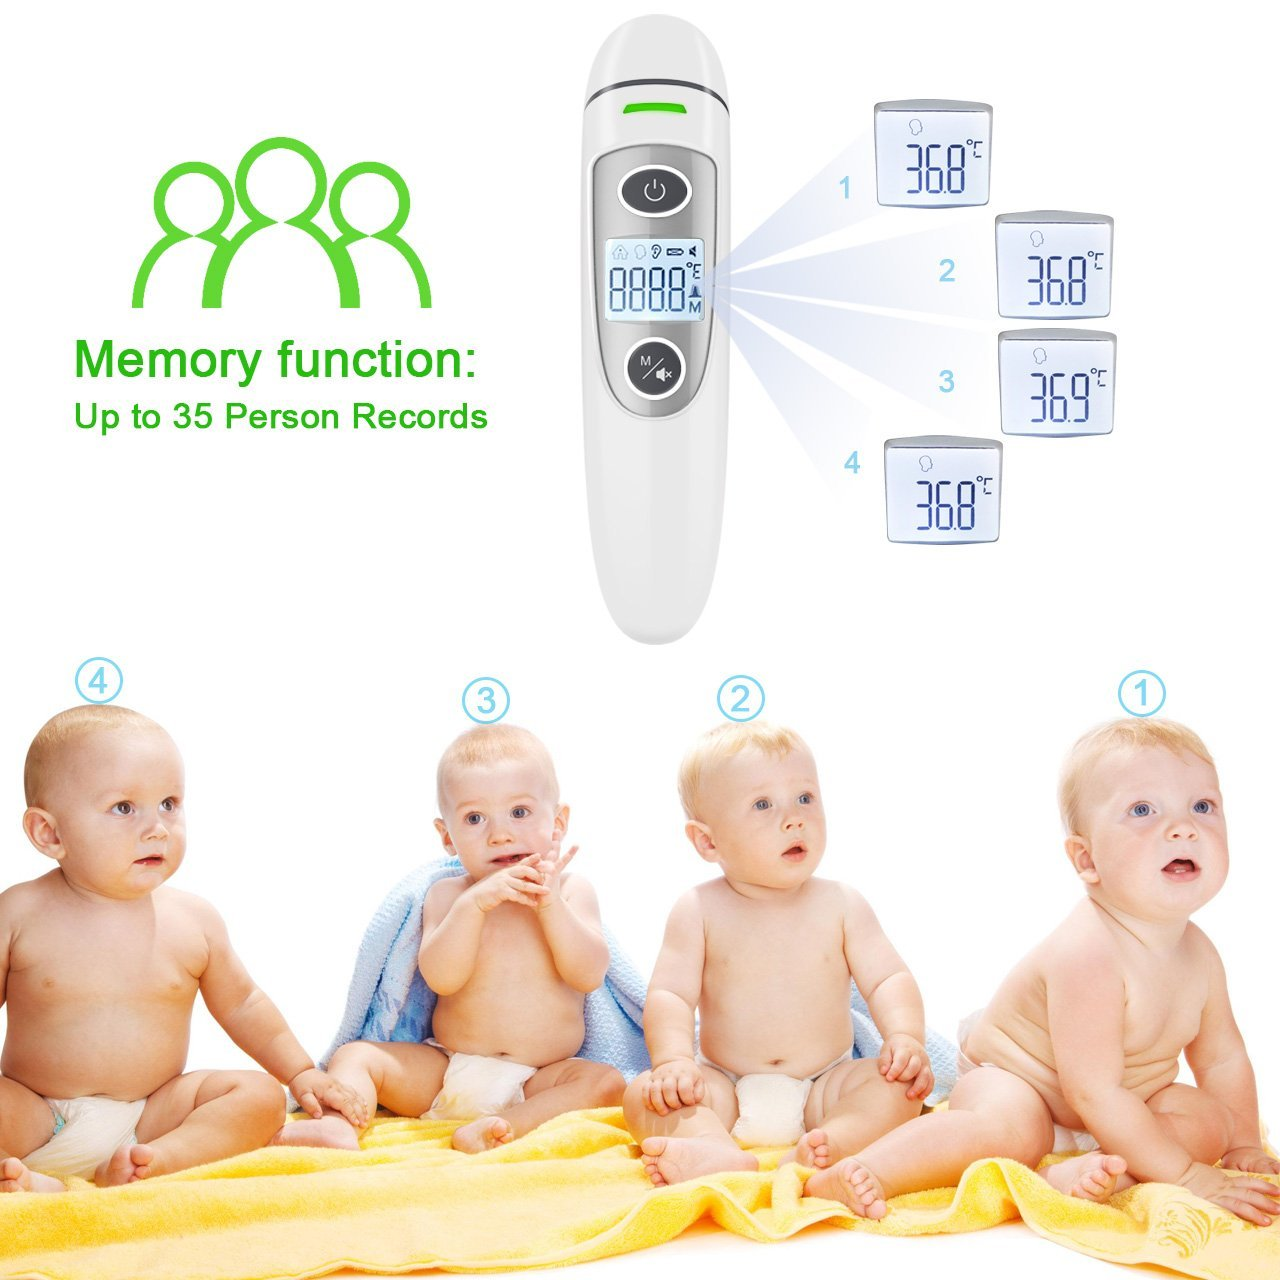 Forehead and Ear Thermometer, THZY Upgraded Digital Infrared Thermometer with Fever Indicator, Dual Mode Body Thermometer Suitable for Baby, Infants, Toddlers and Adult CE&FDA Approved by THZY (Image #3)